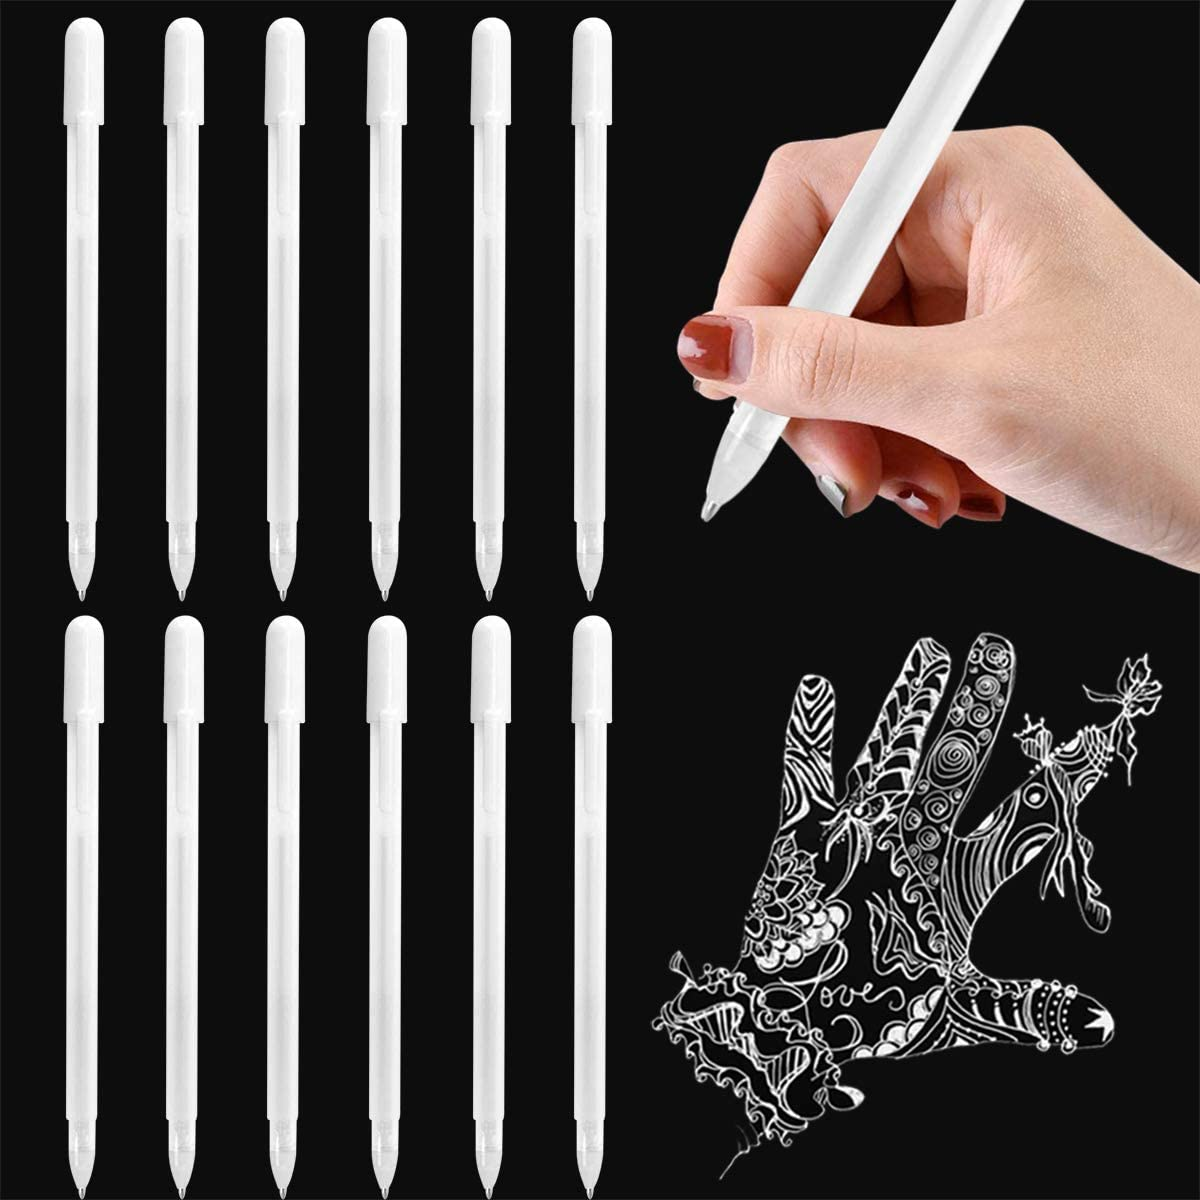 12 Pieces White Gel Ink Pens, Fine Point Marker Pens Smooth Writing for Drawing Highlight Sketching Illustration Paintings